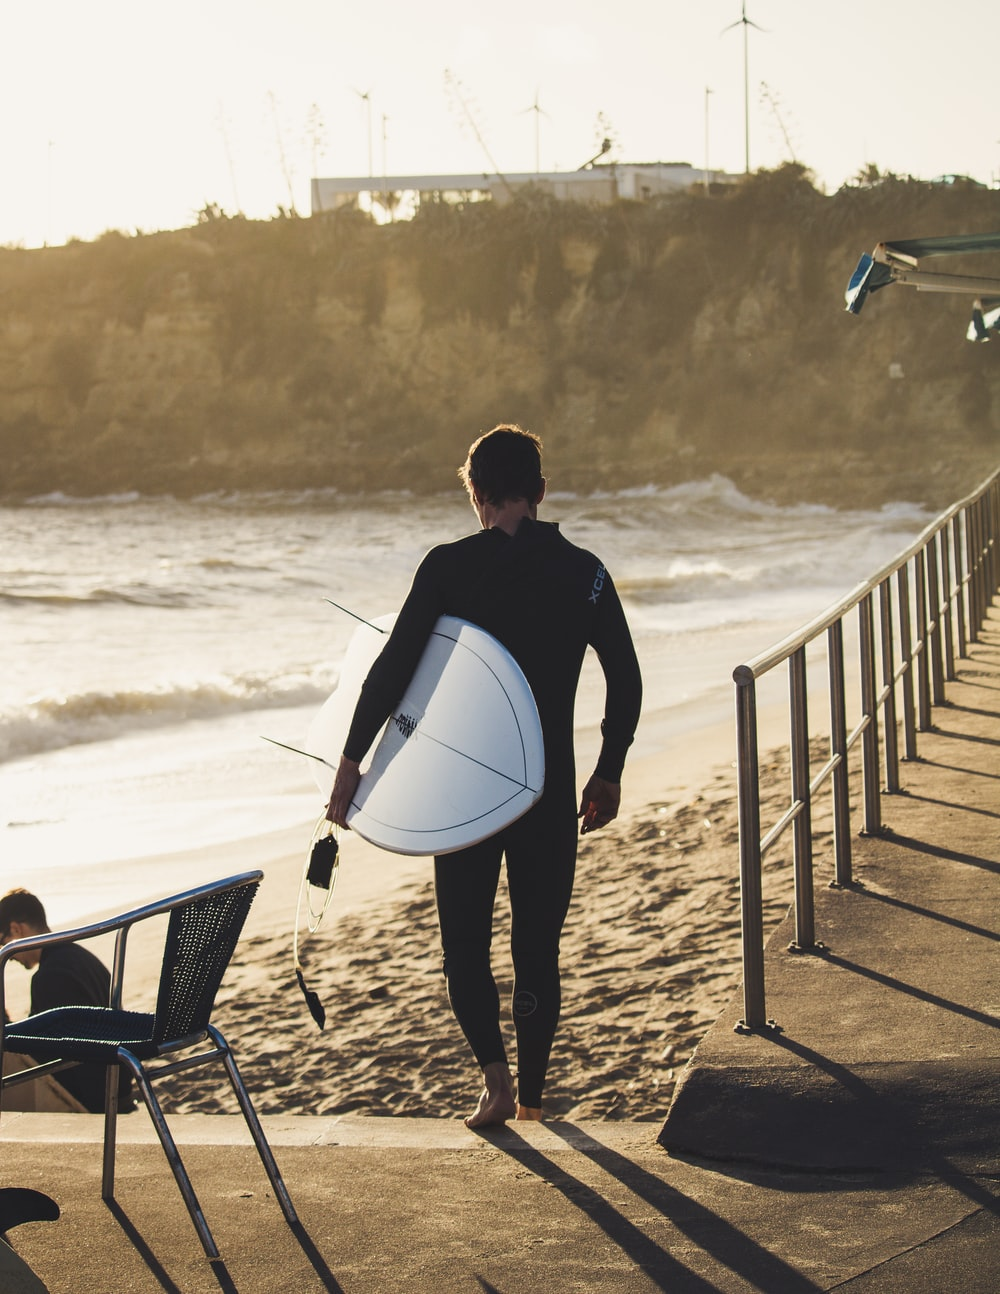 man carrying surfboard during daytime